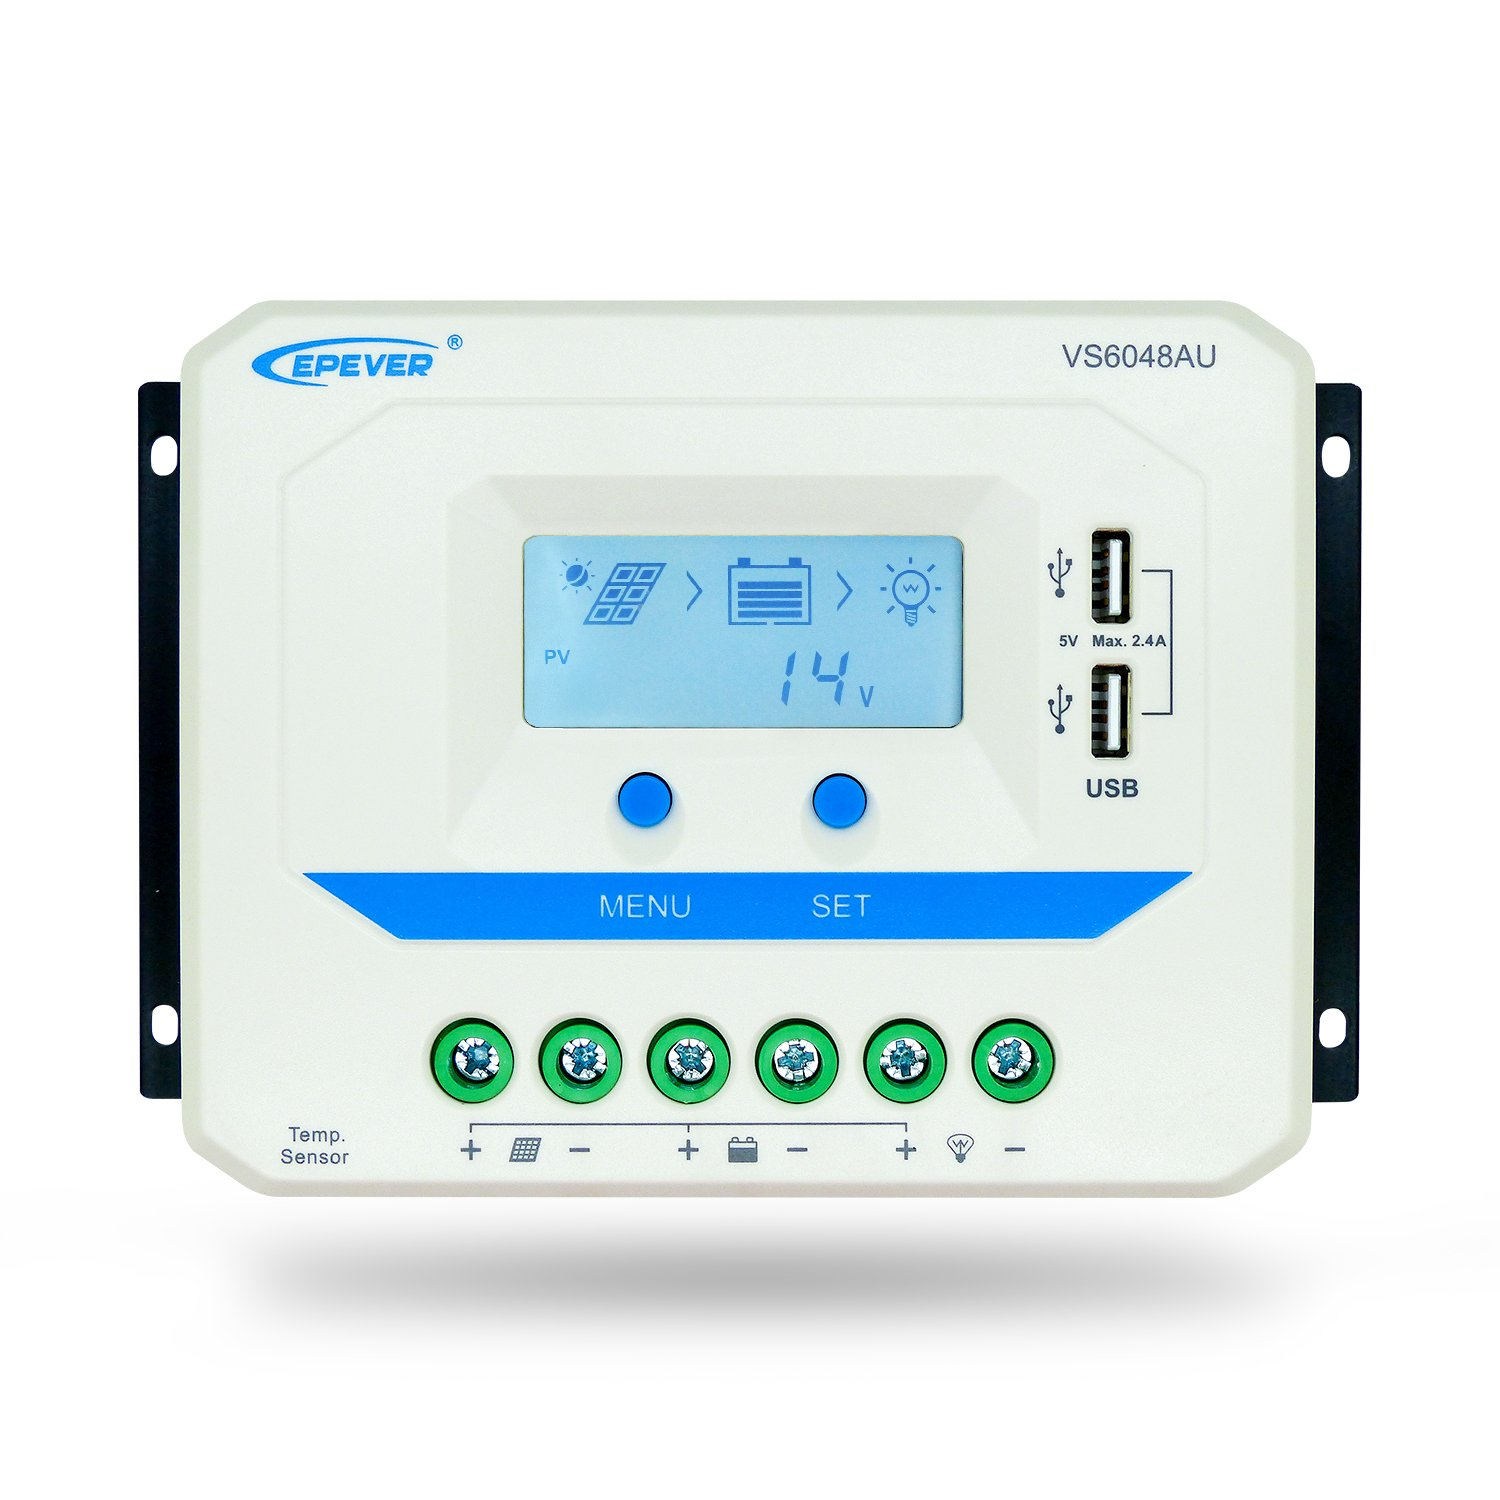 EPever 60A Solar Charge Controller VS6048AU with Dual USB Output, 12V/24V/36V/48V Auto with LCD Display for Solar Panel Battery Charging System (60A, VS6048AU)